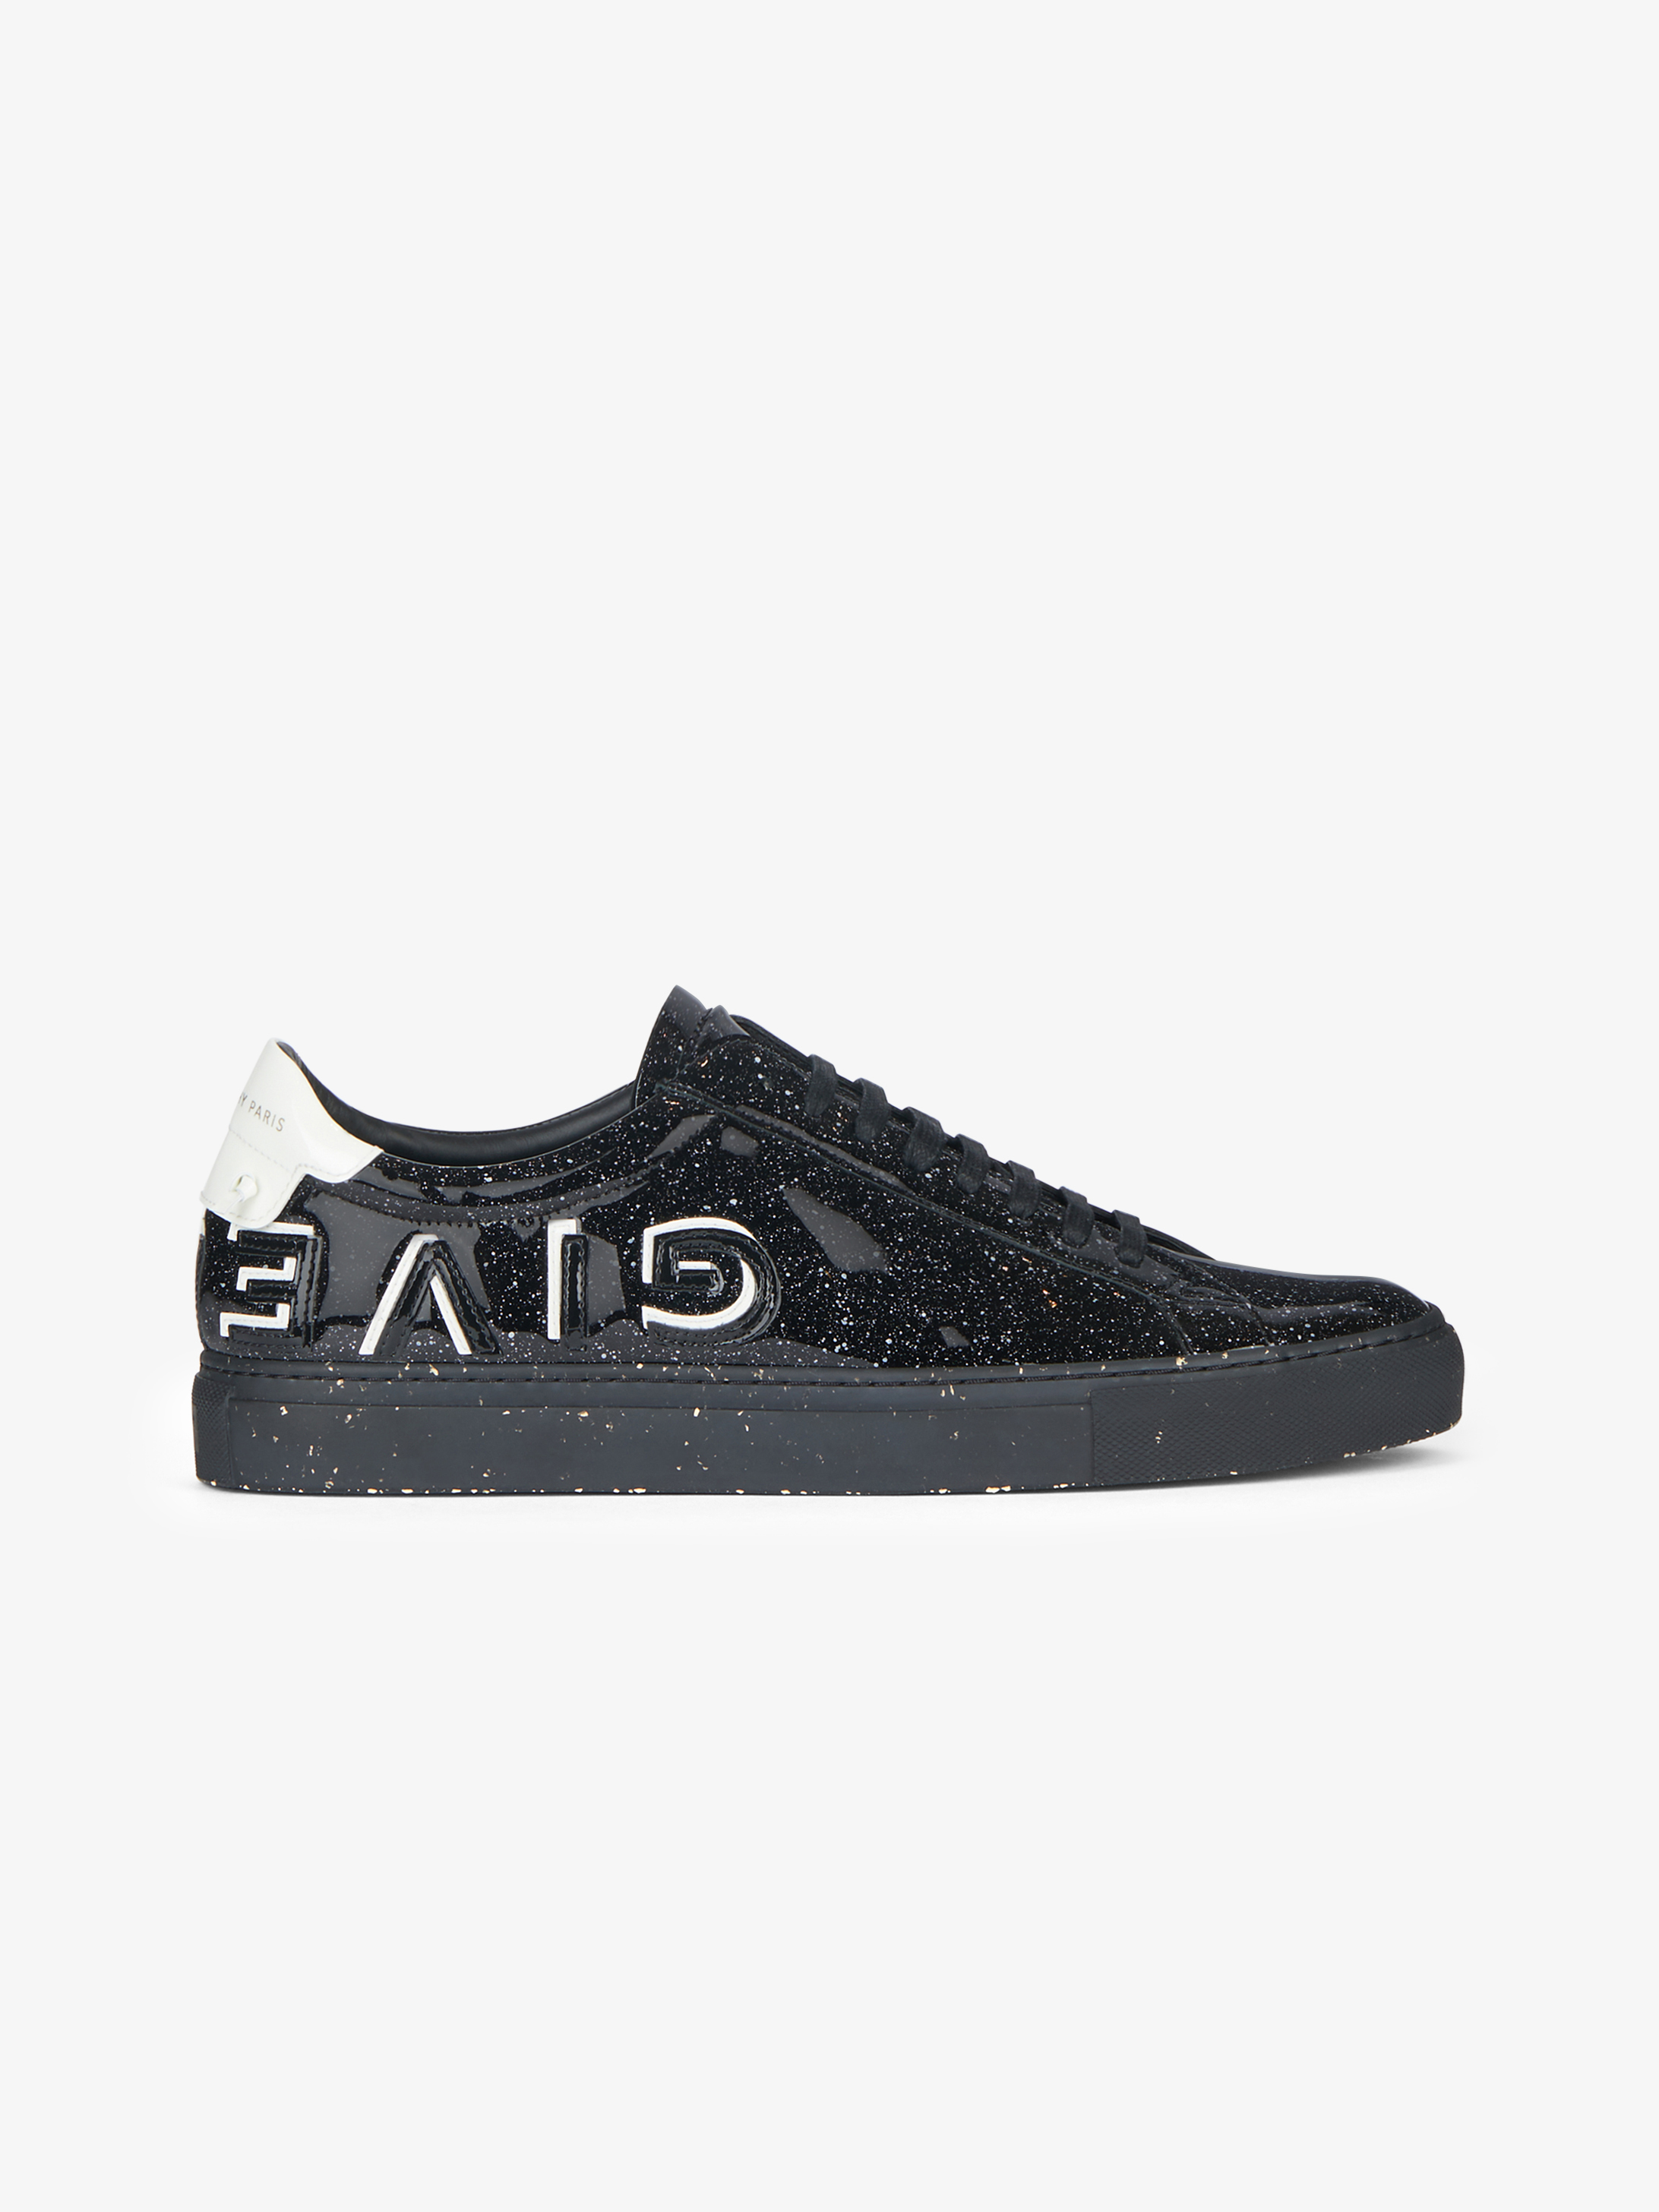 GIVENCHY reverse sneakers in patent leather